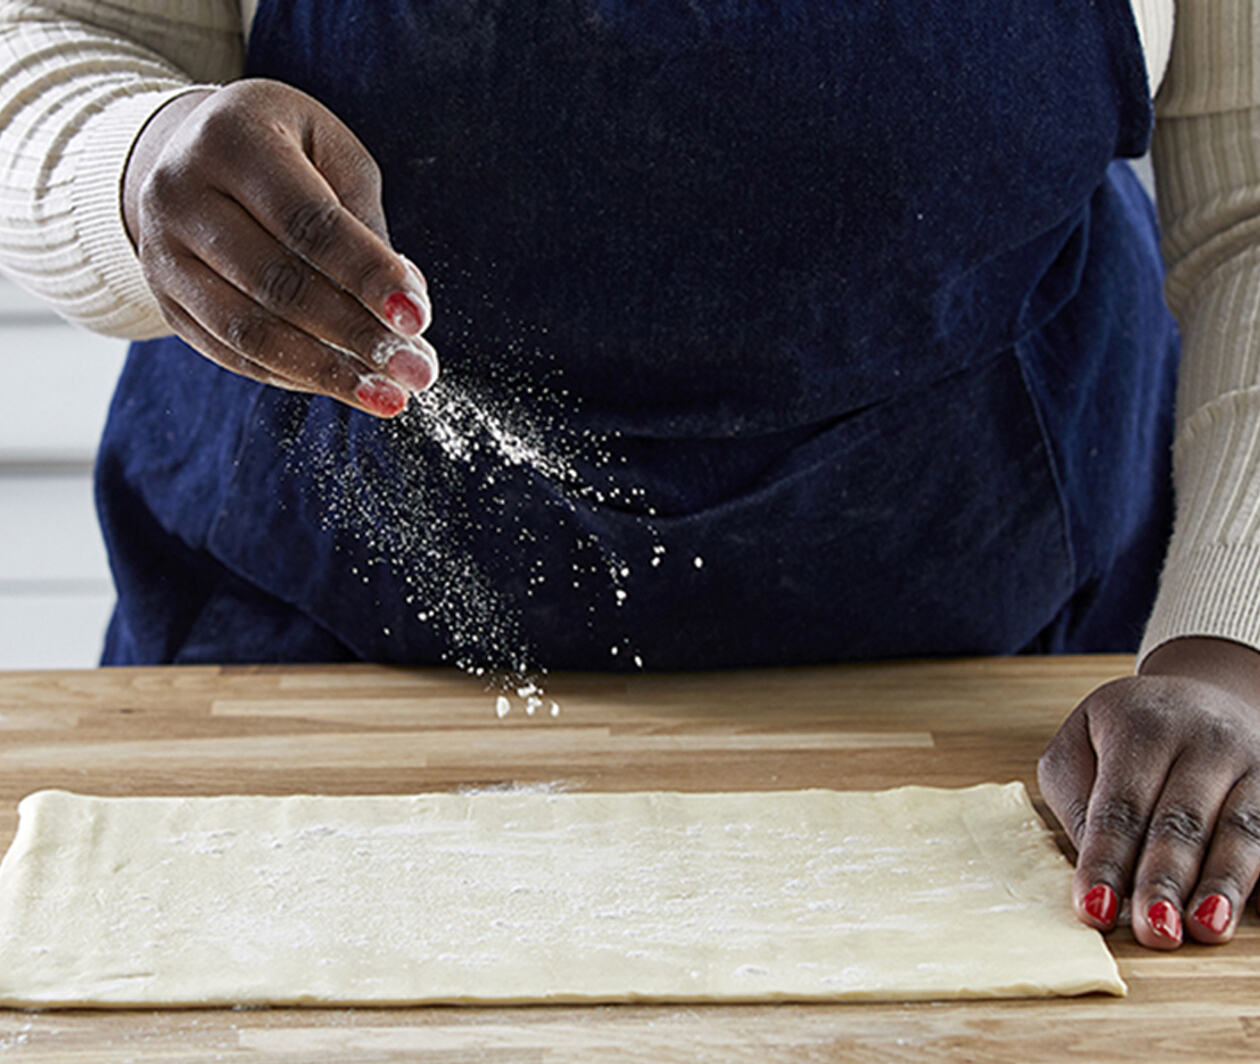 Learn How to Bake Pies and Tarts with BBC Good Food